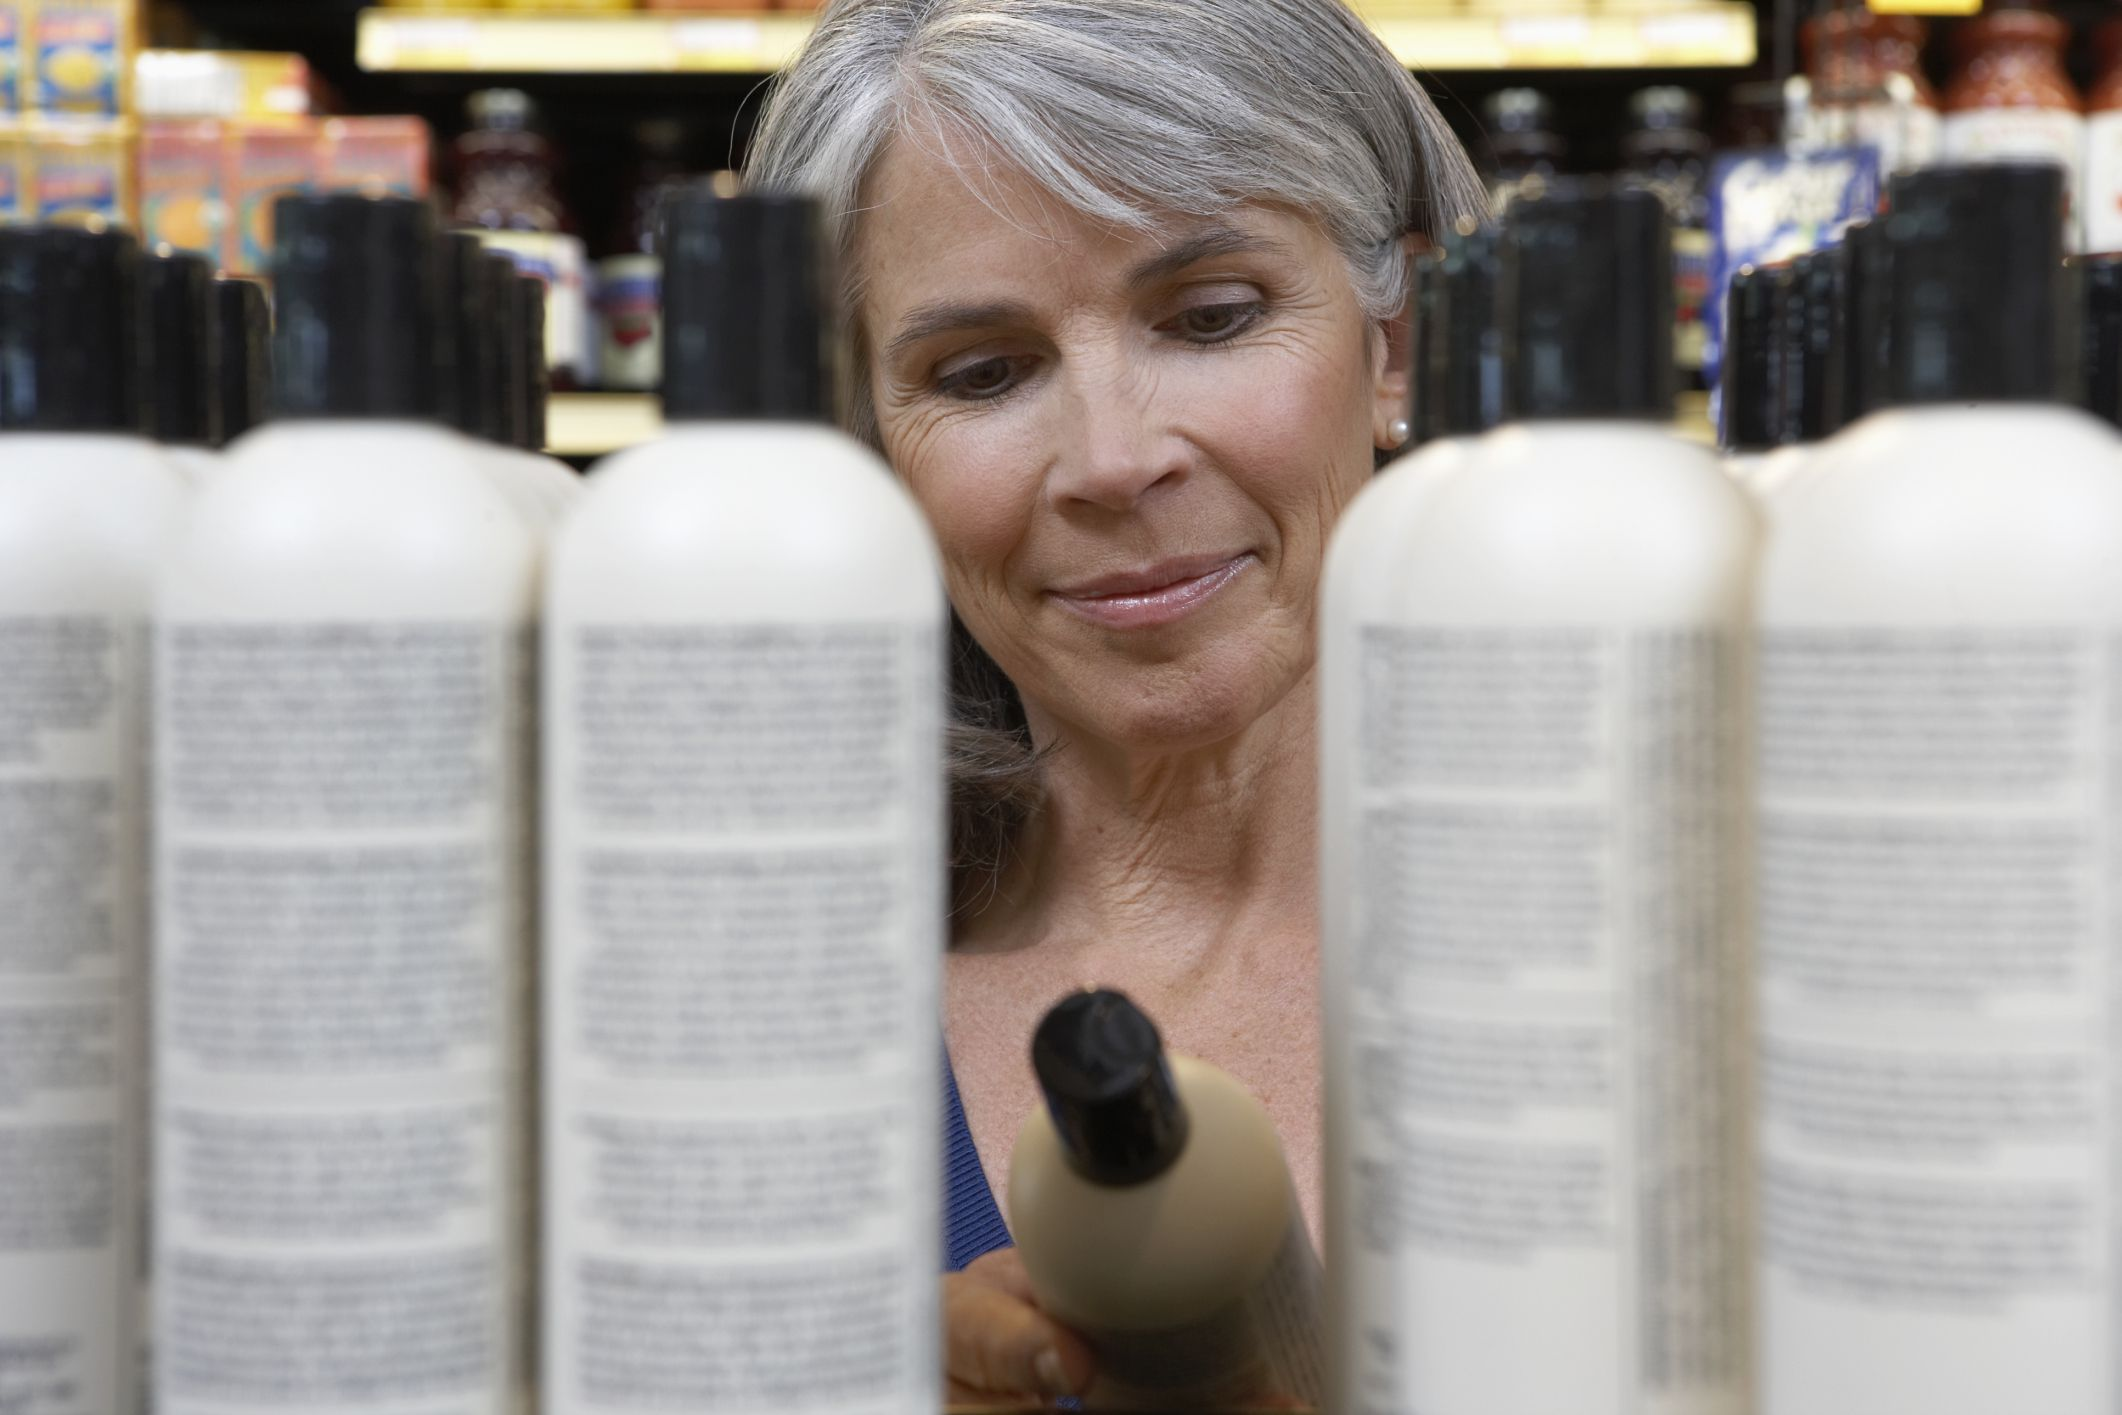 Selecting the Right Shampoo